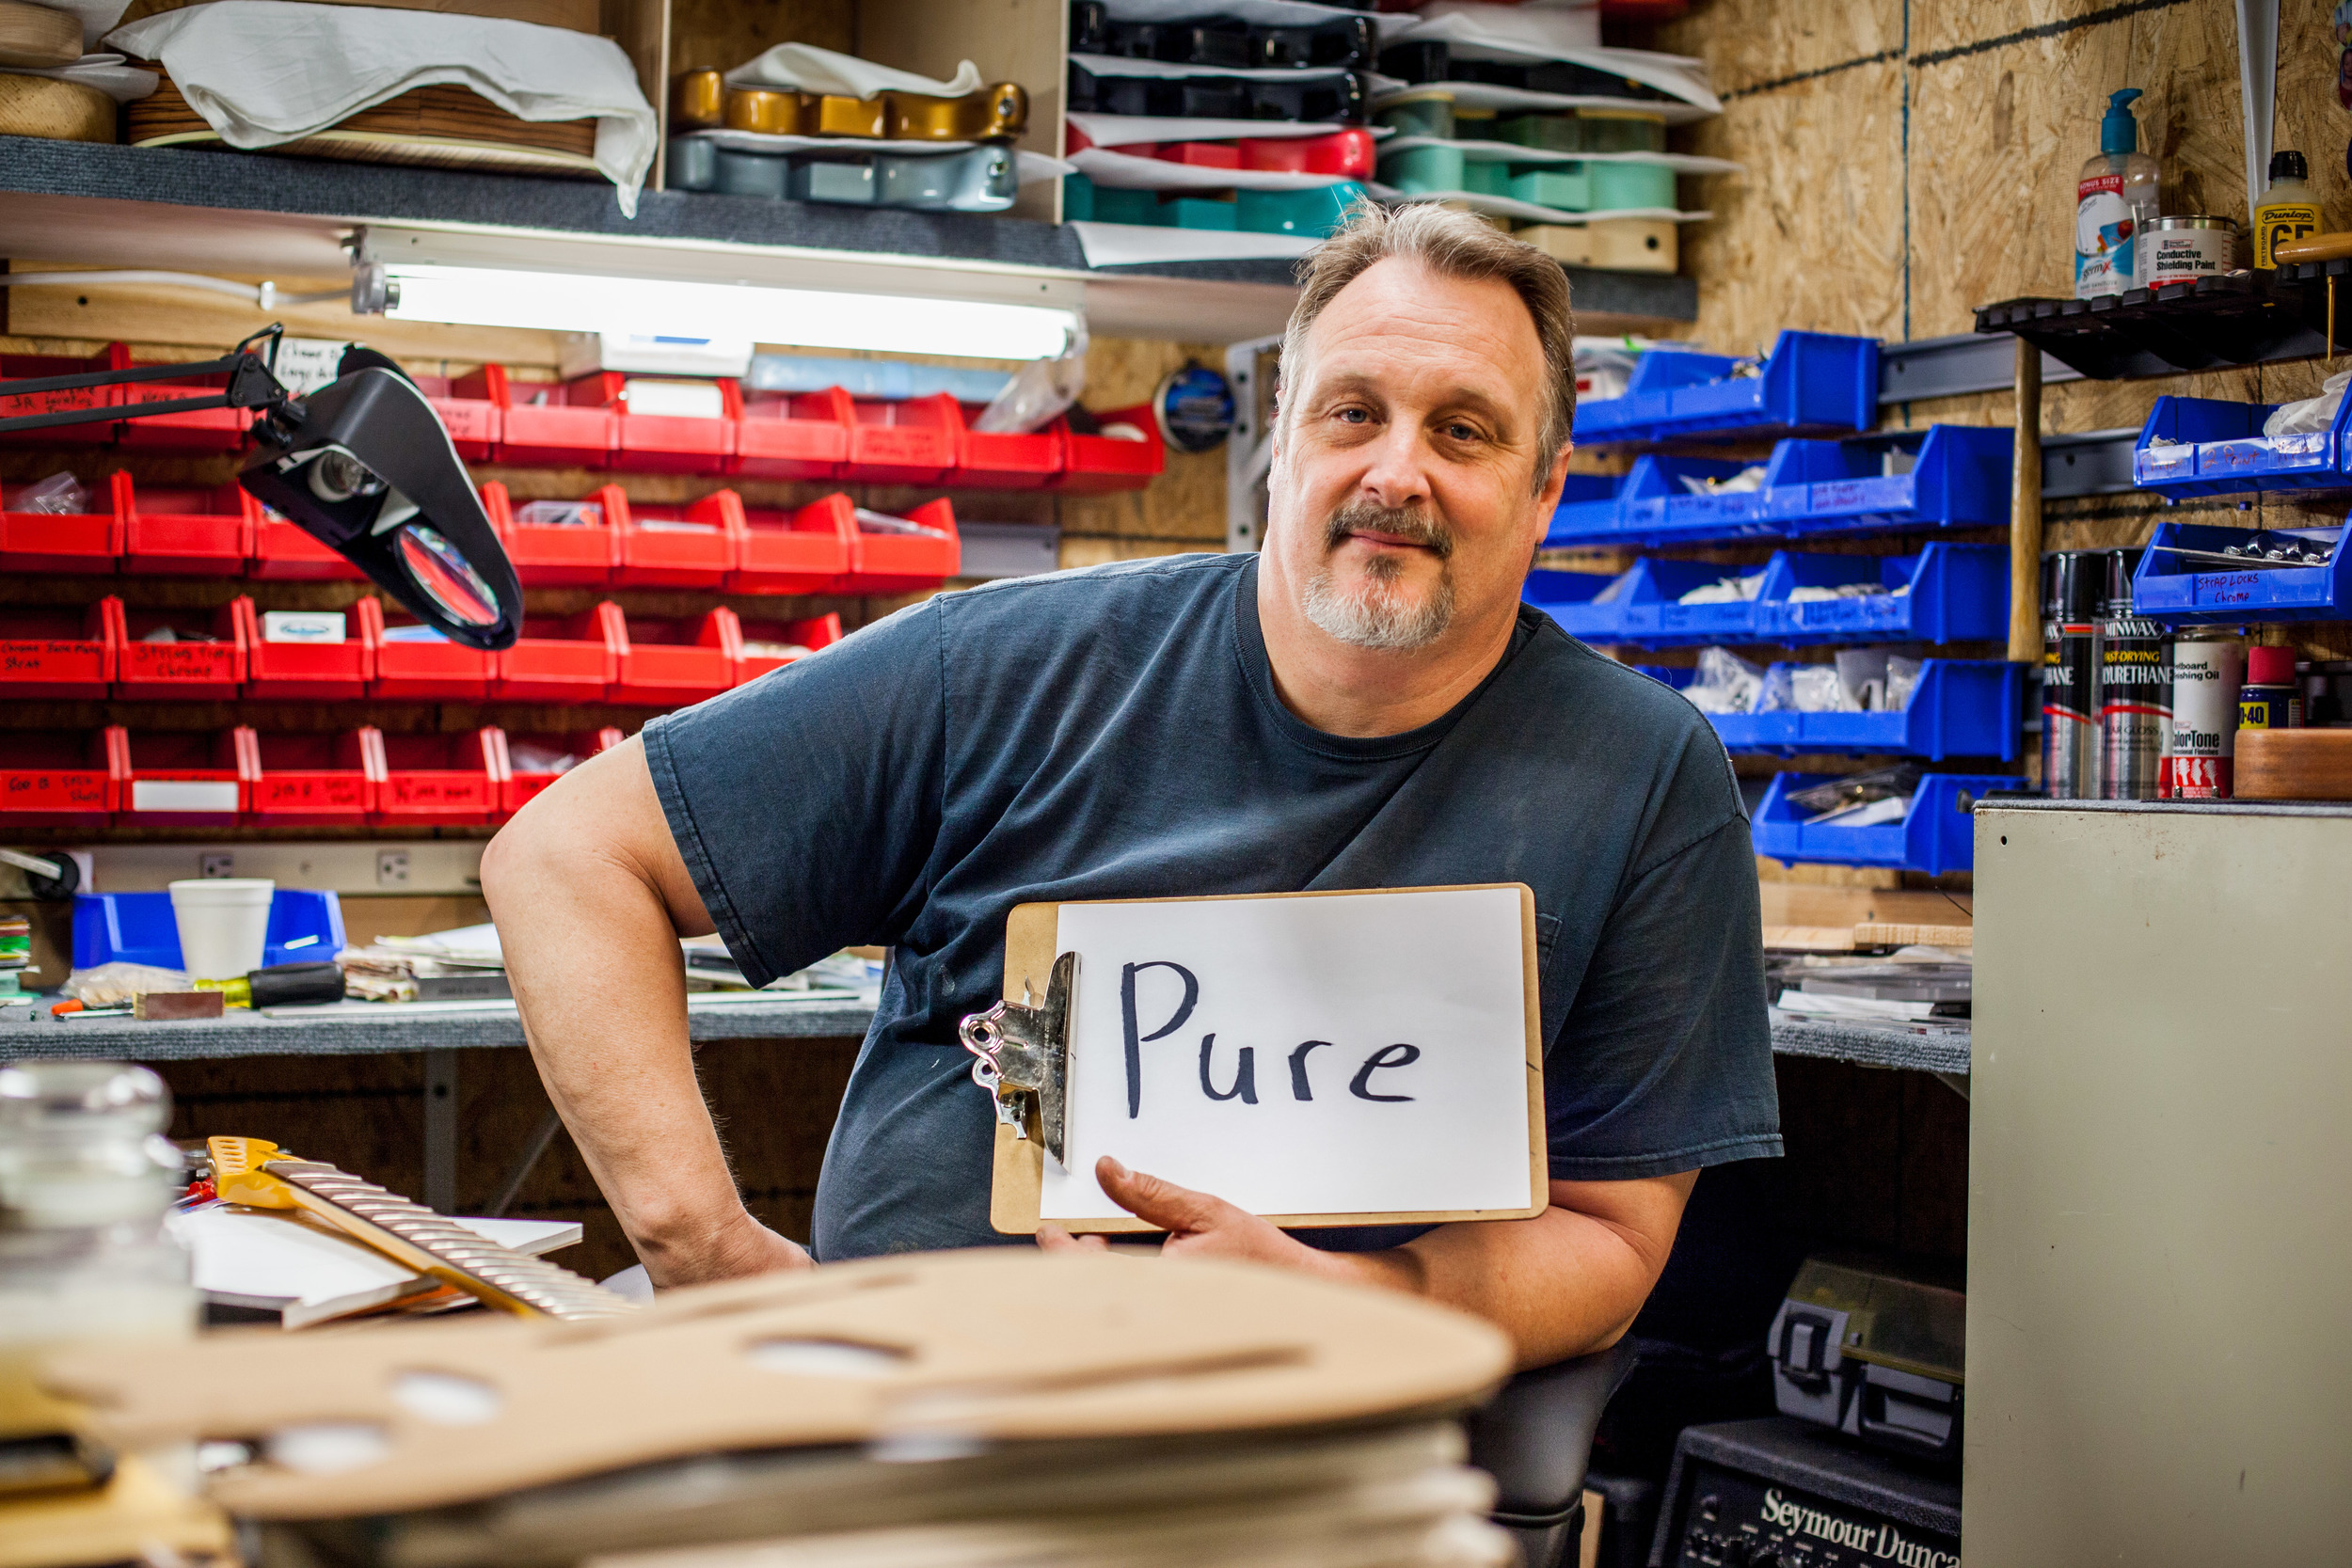 Man holding a sign saying pure while sitting in his work shop.